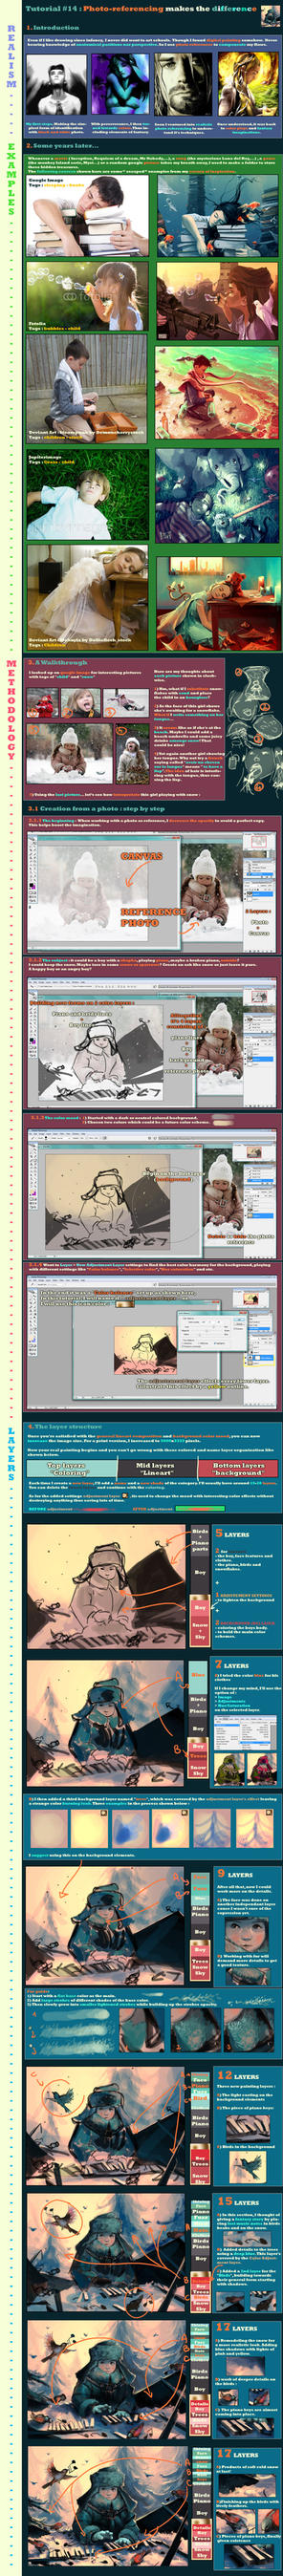 Tutorial 14 Photoref to make the difference by AquaSixio